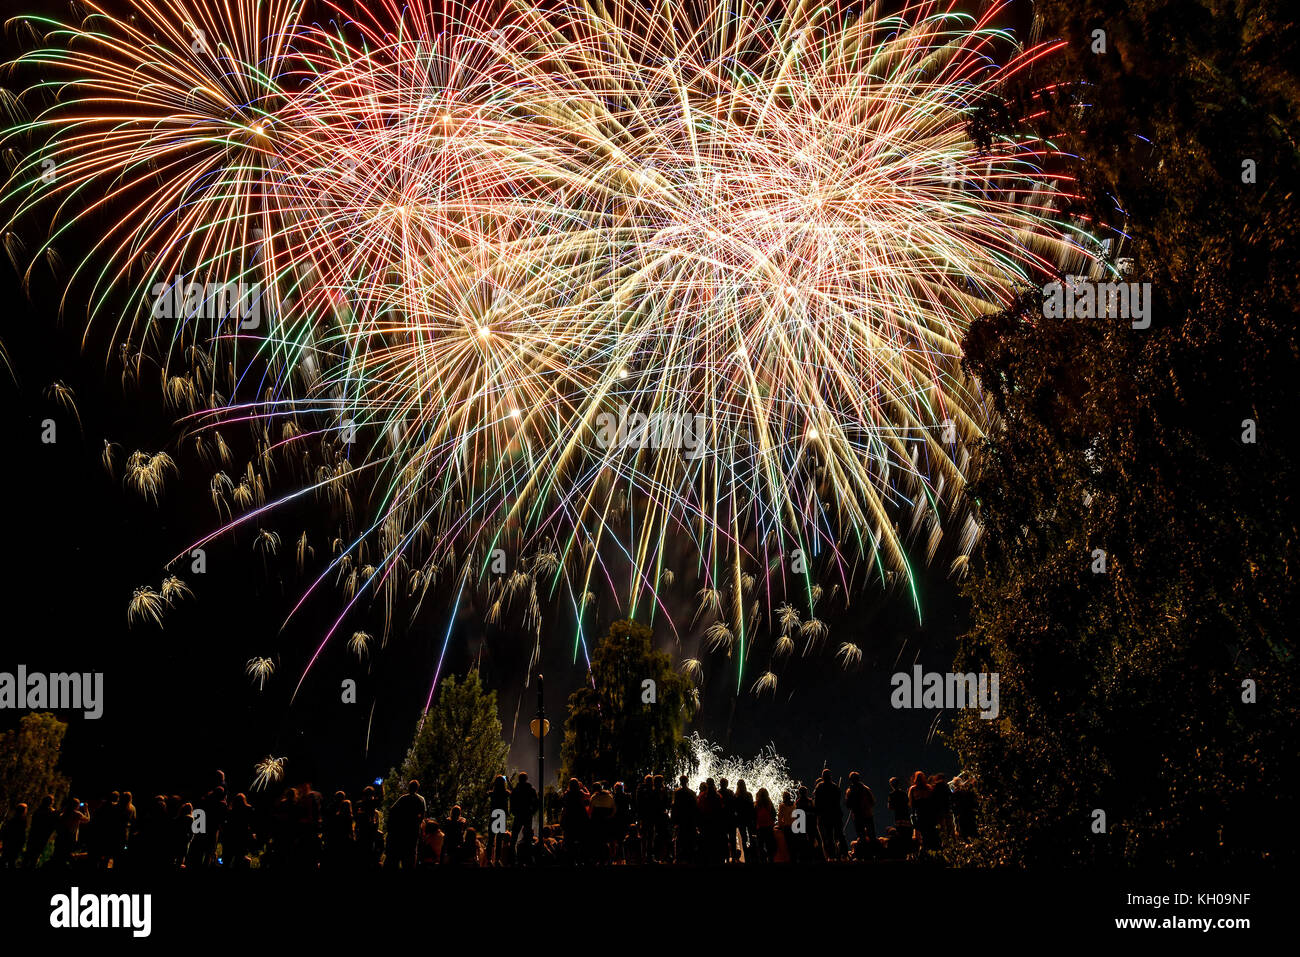 Barnaul, Russia. Celebration of the City Day, September 3, 2016. People look at the beautiful festive fireworks, - Stock Image